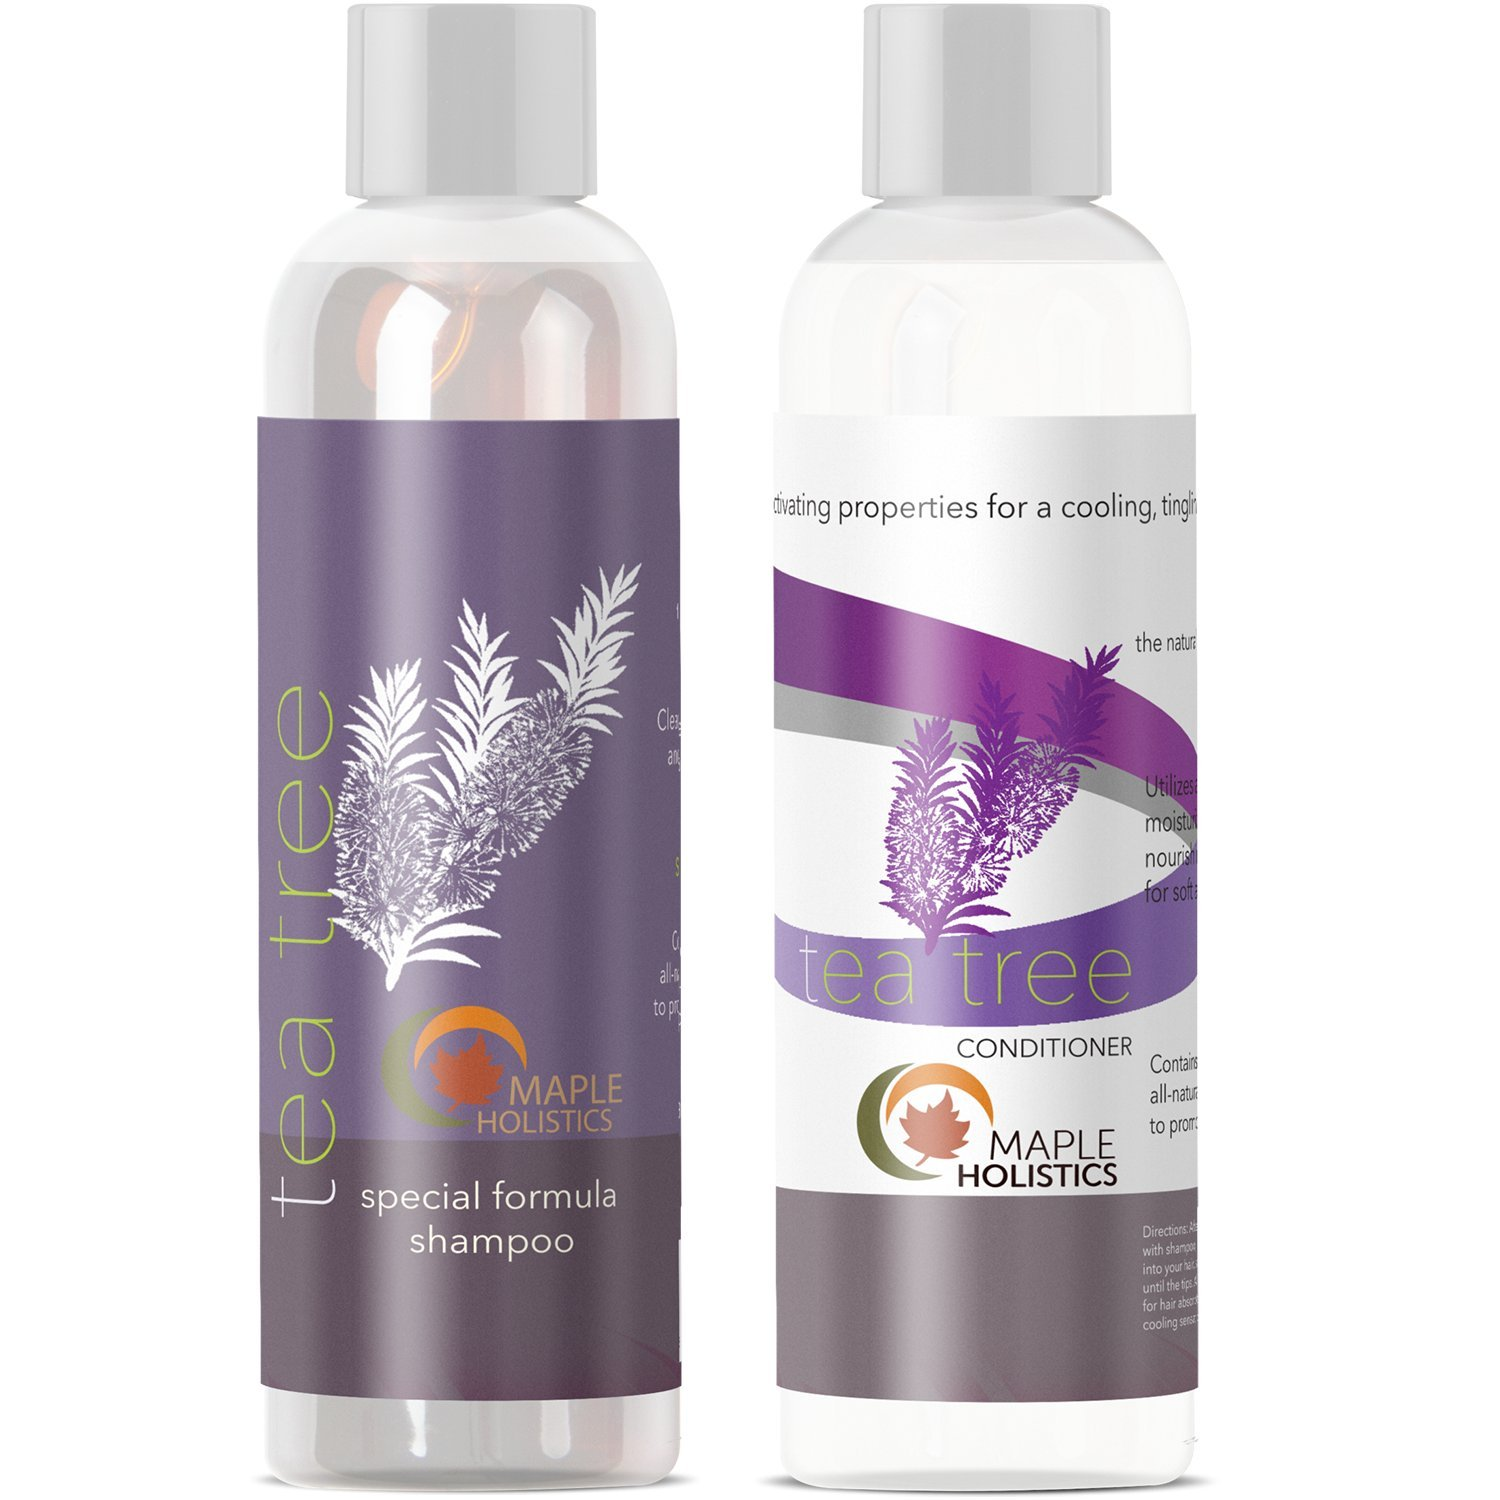 Tea Tree Oil Shampoo and Hair Conditioner Set - Natural Anti Dandruff Treatment for Dry and Damaged Hair - Best Gift Bundle for Men and Women - Sulfate Free & Safe for Color Treated Hair - USA Made Maple Holistics